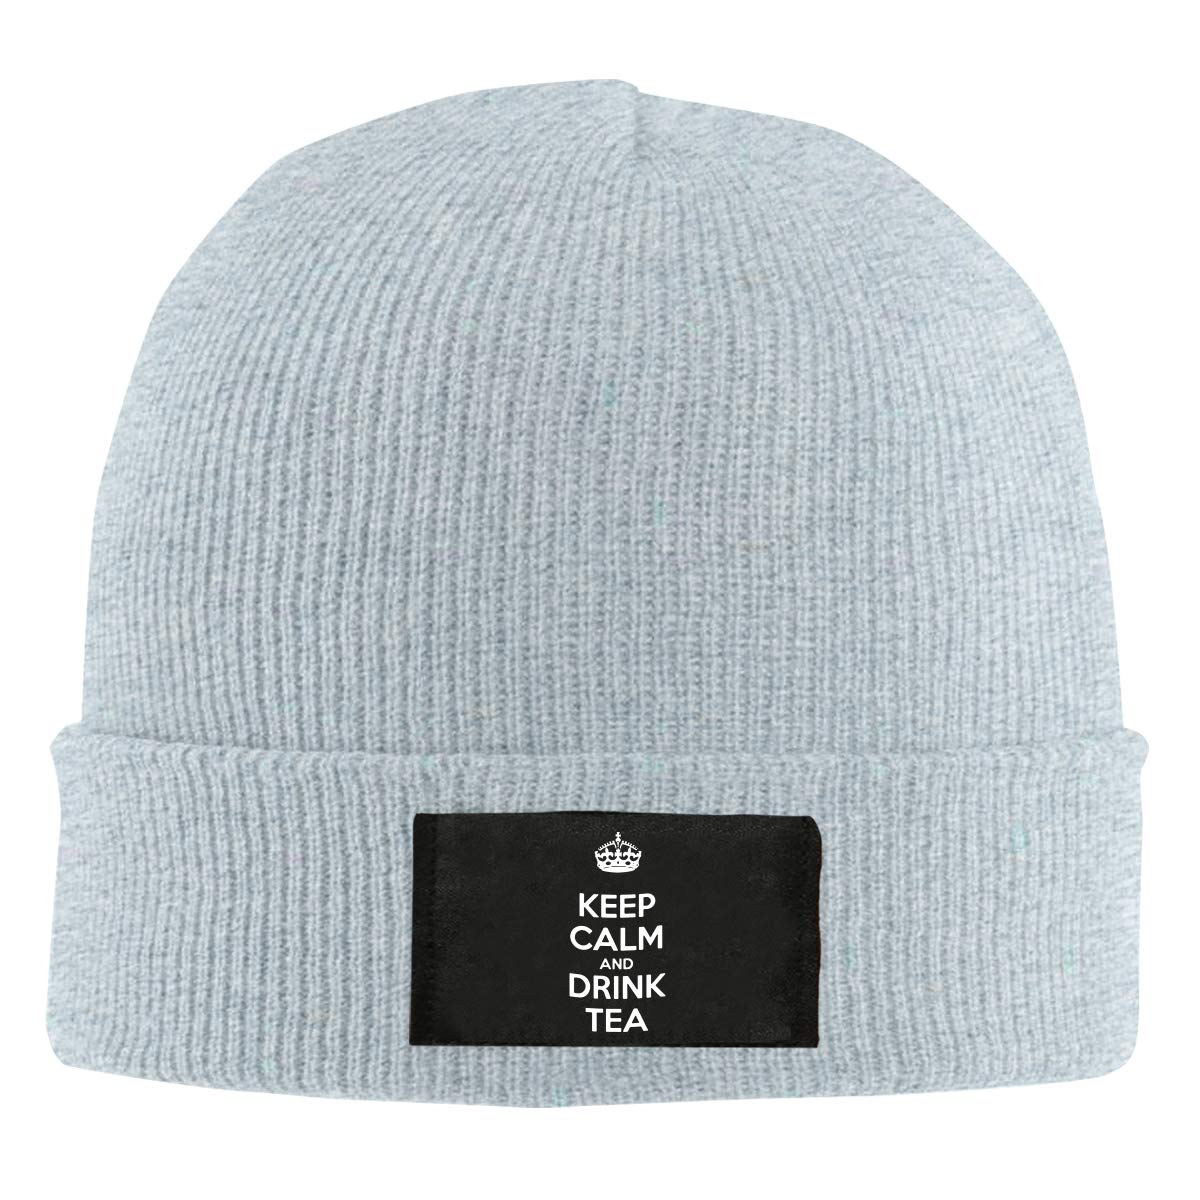 BF5Y6z/&MA Mens and Womens Keep Calm and Drink Tea Knitted Hat 100/% Acrylic Warm Beanies Cap